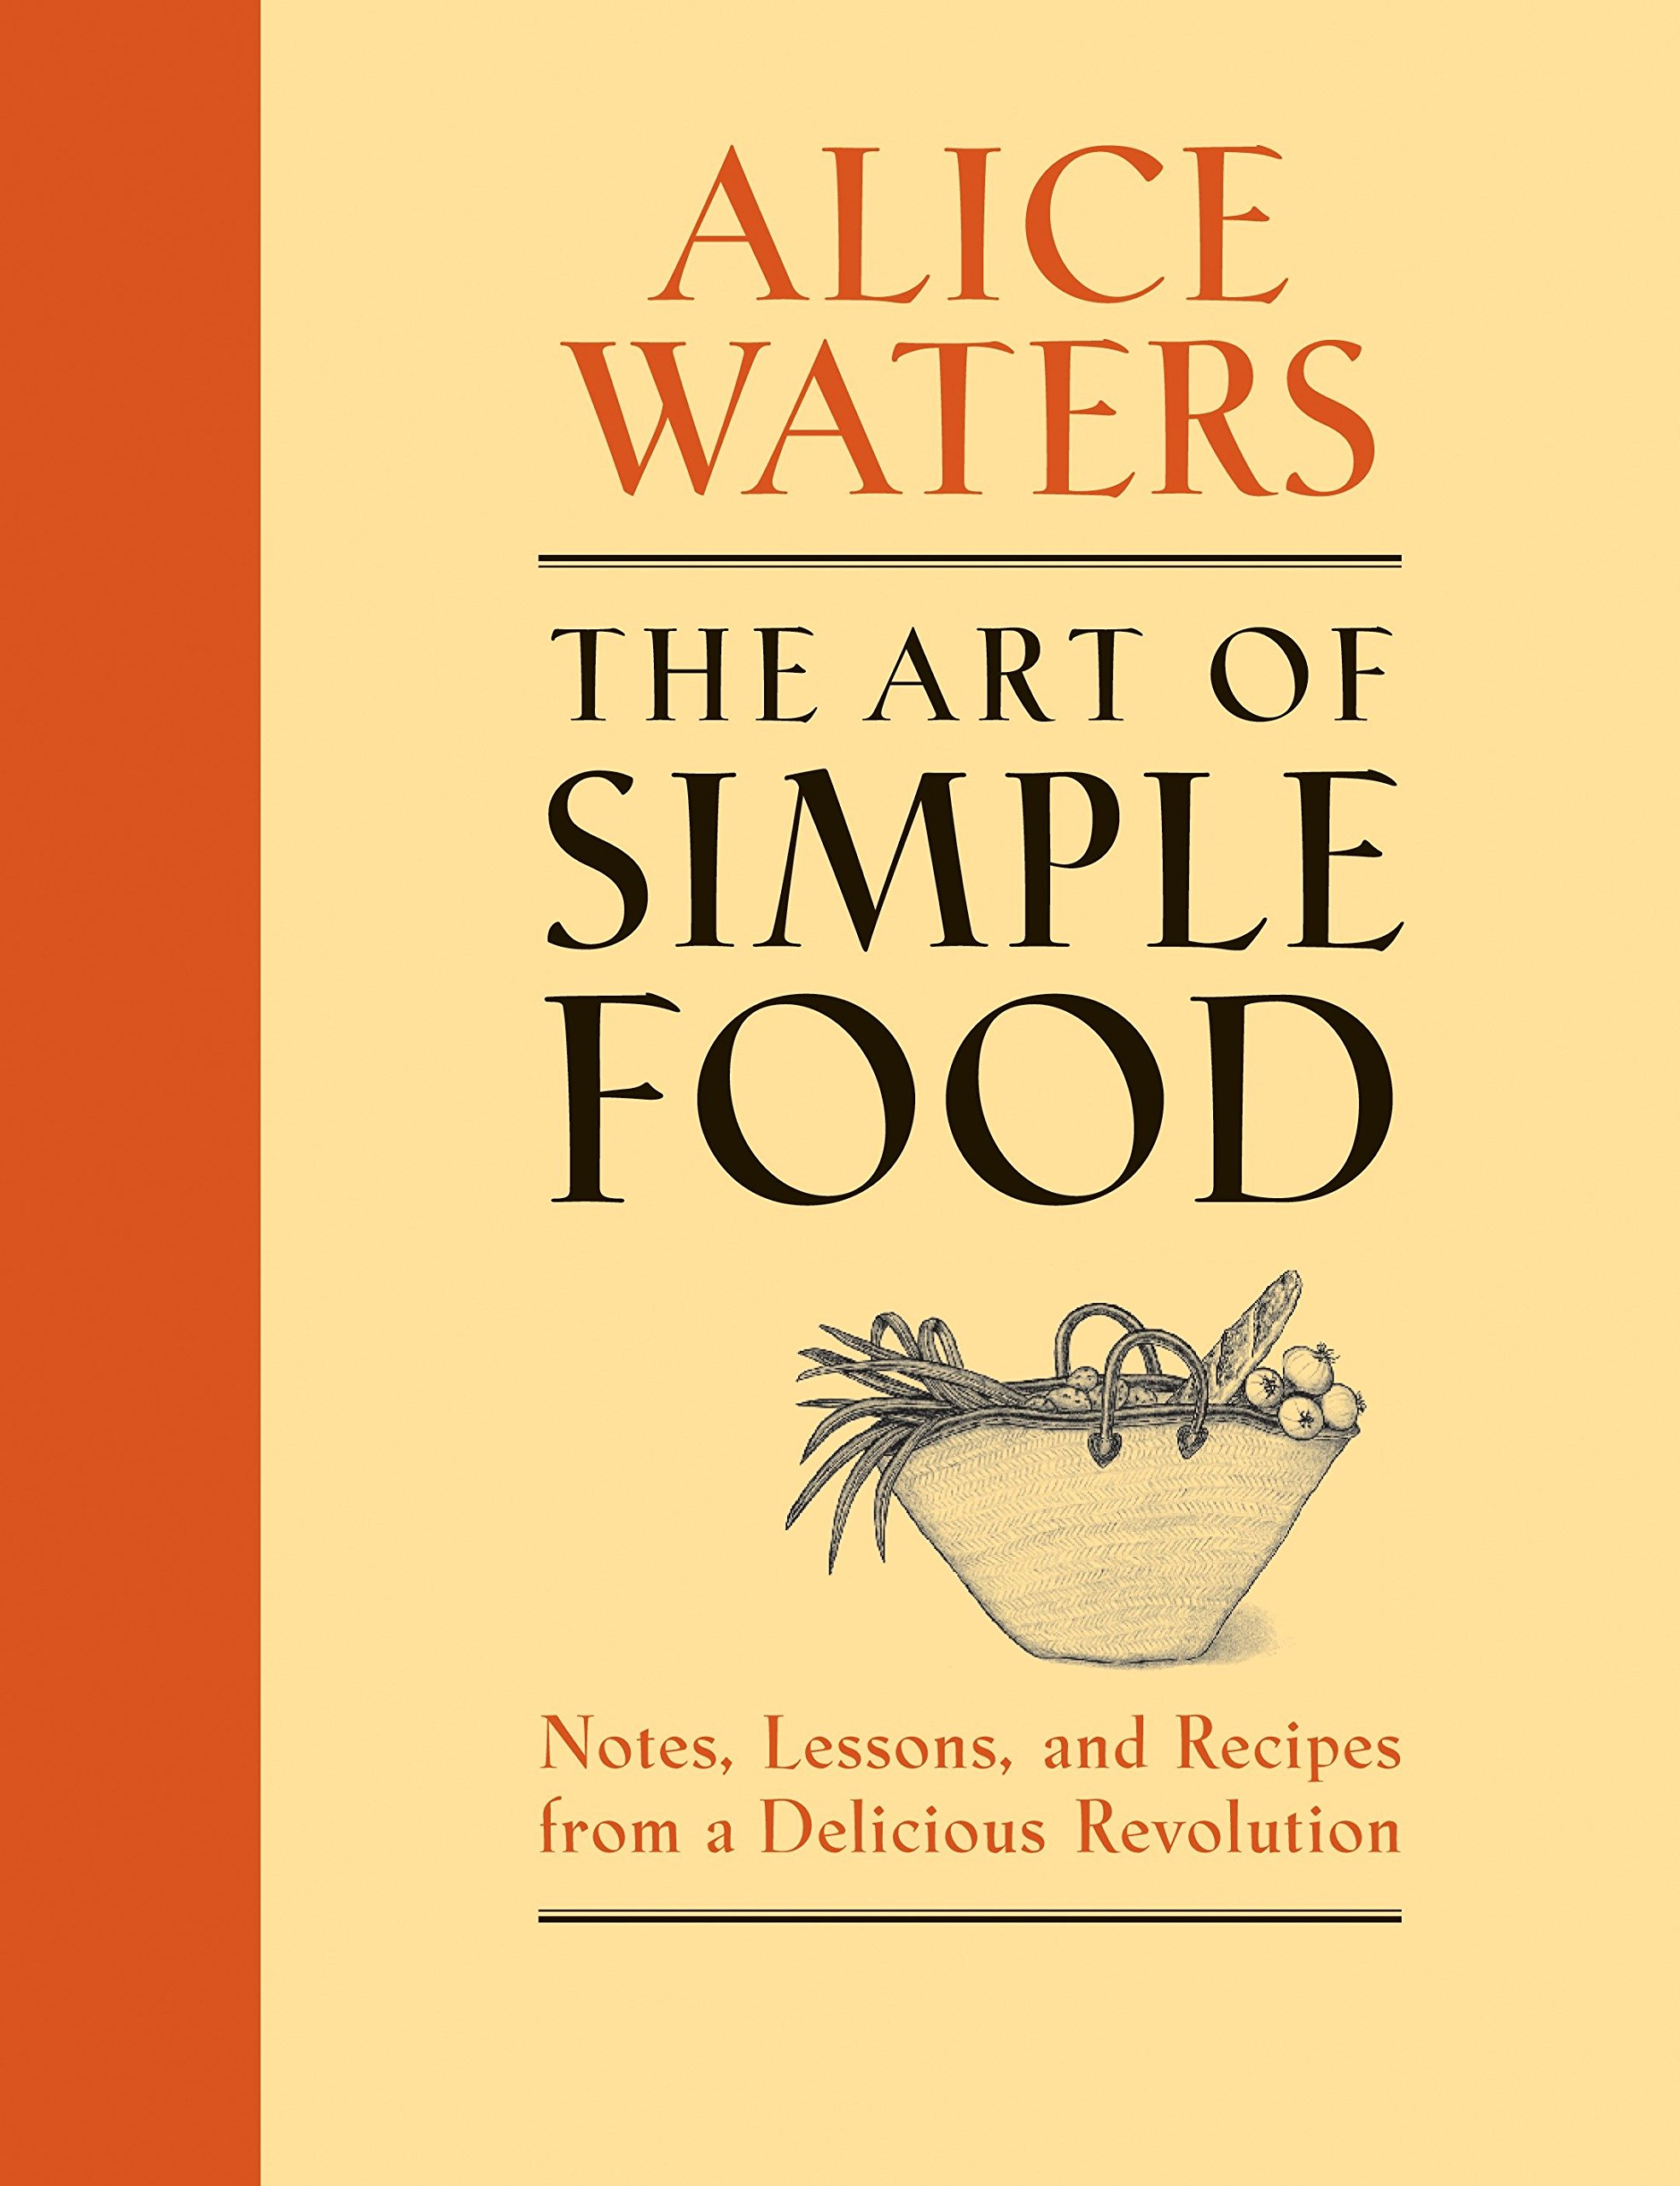 The Art of Simple Food - 8 Cookbooks to own